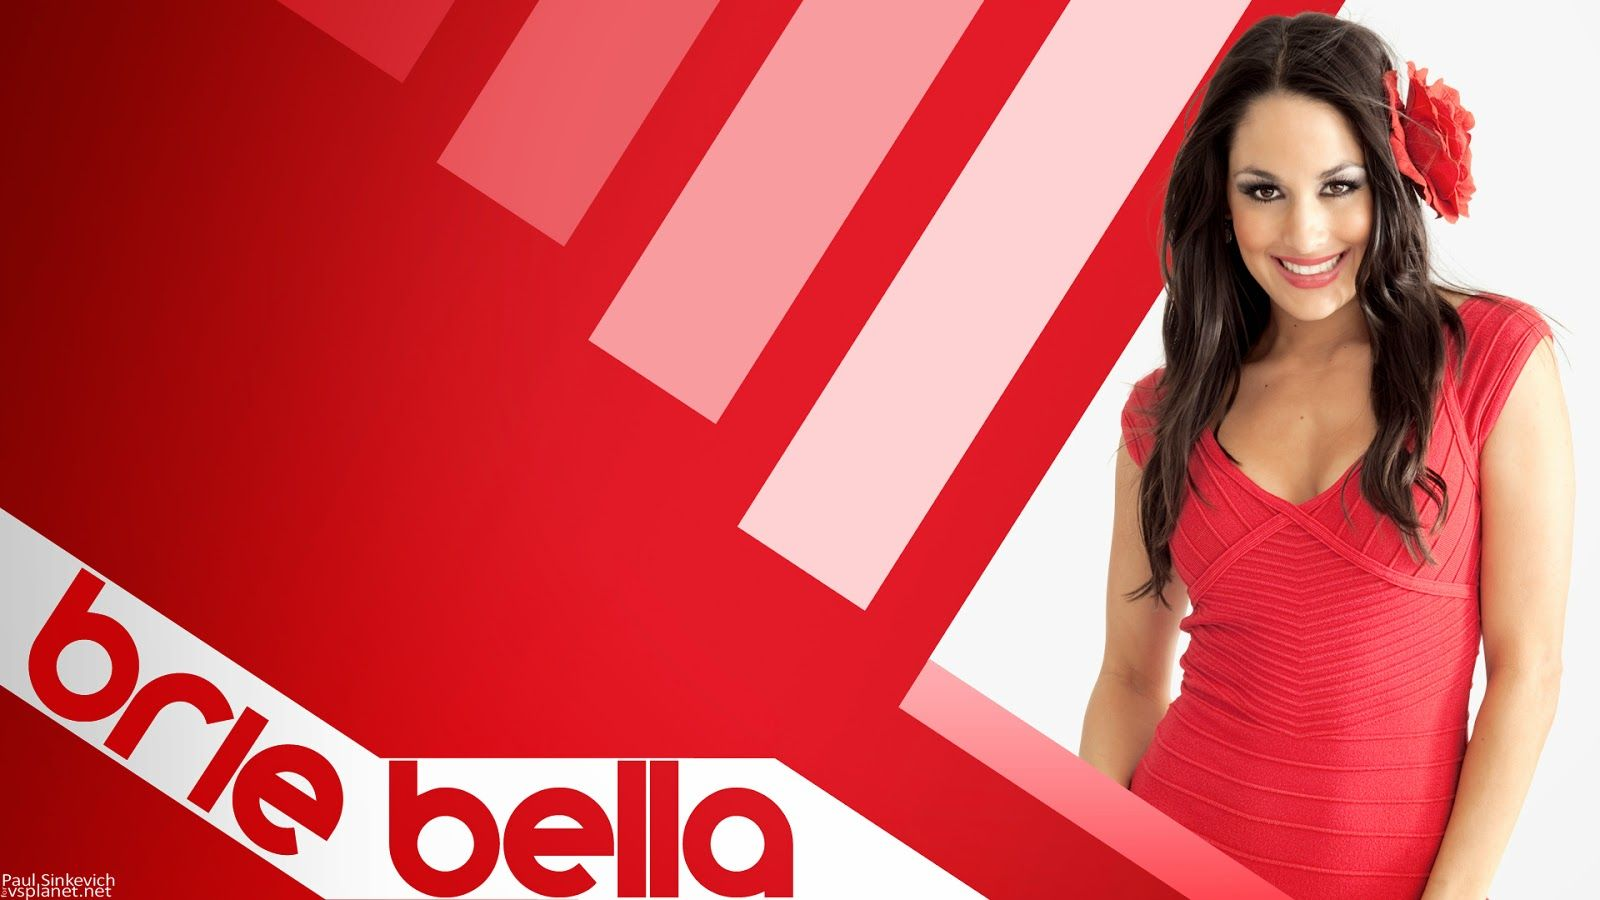 Brie Bella HD Images 1 | Brie Bella HD Images | Pinterest | Brie ...